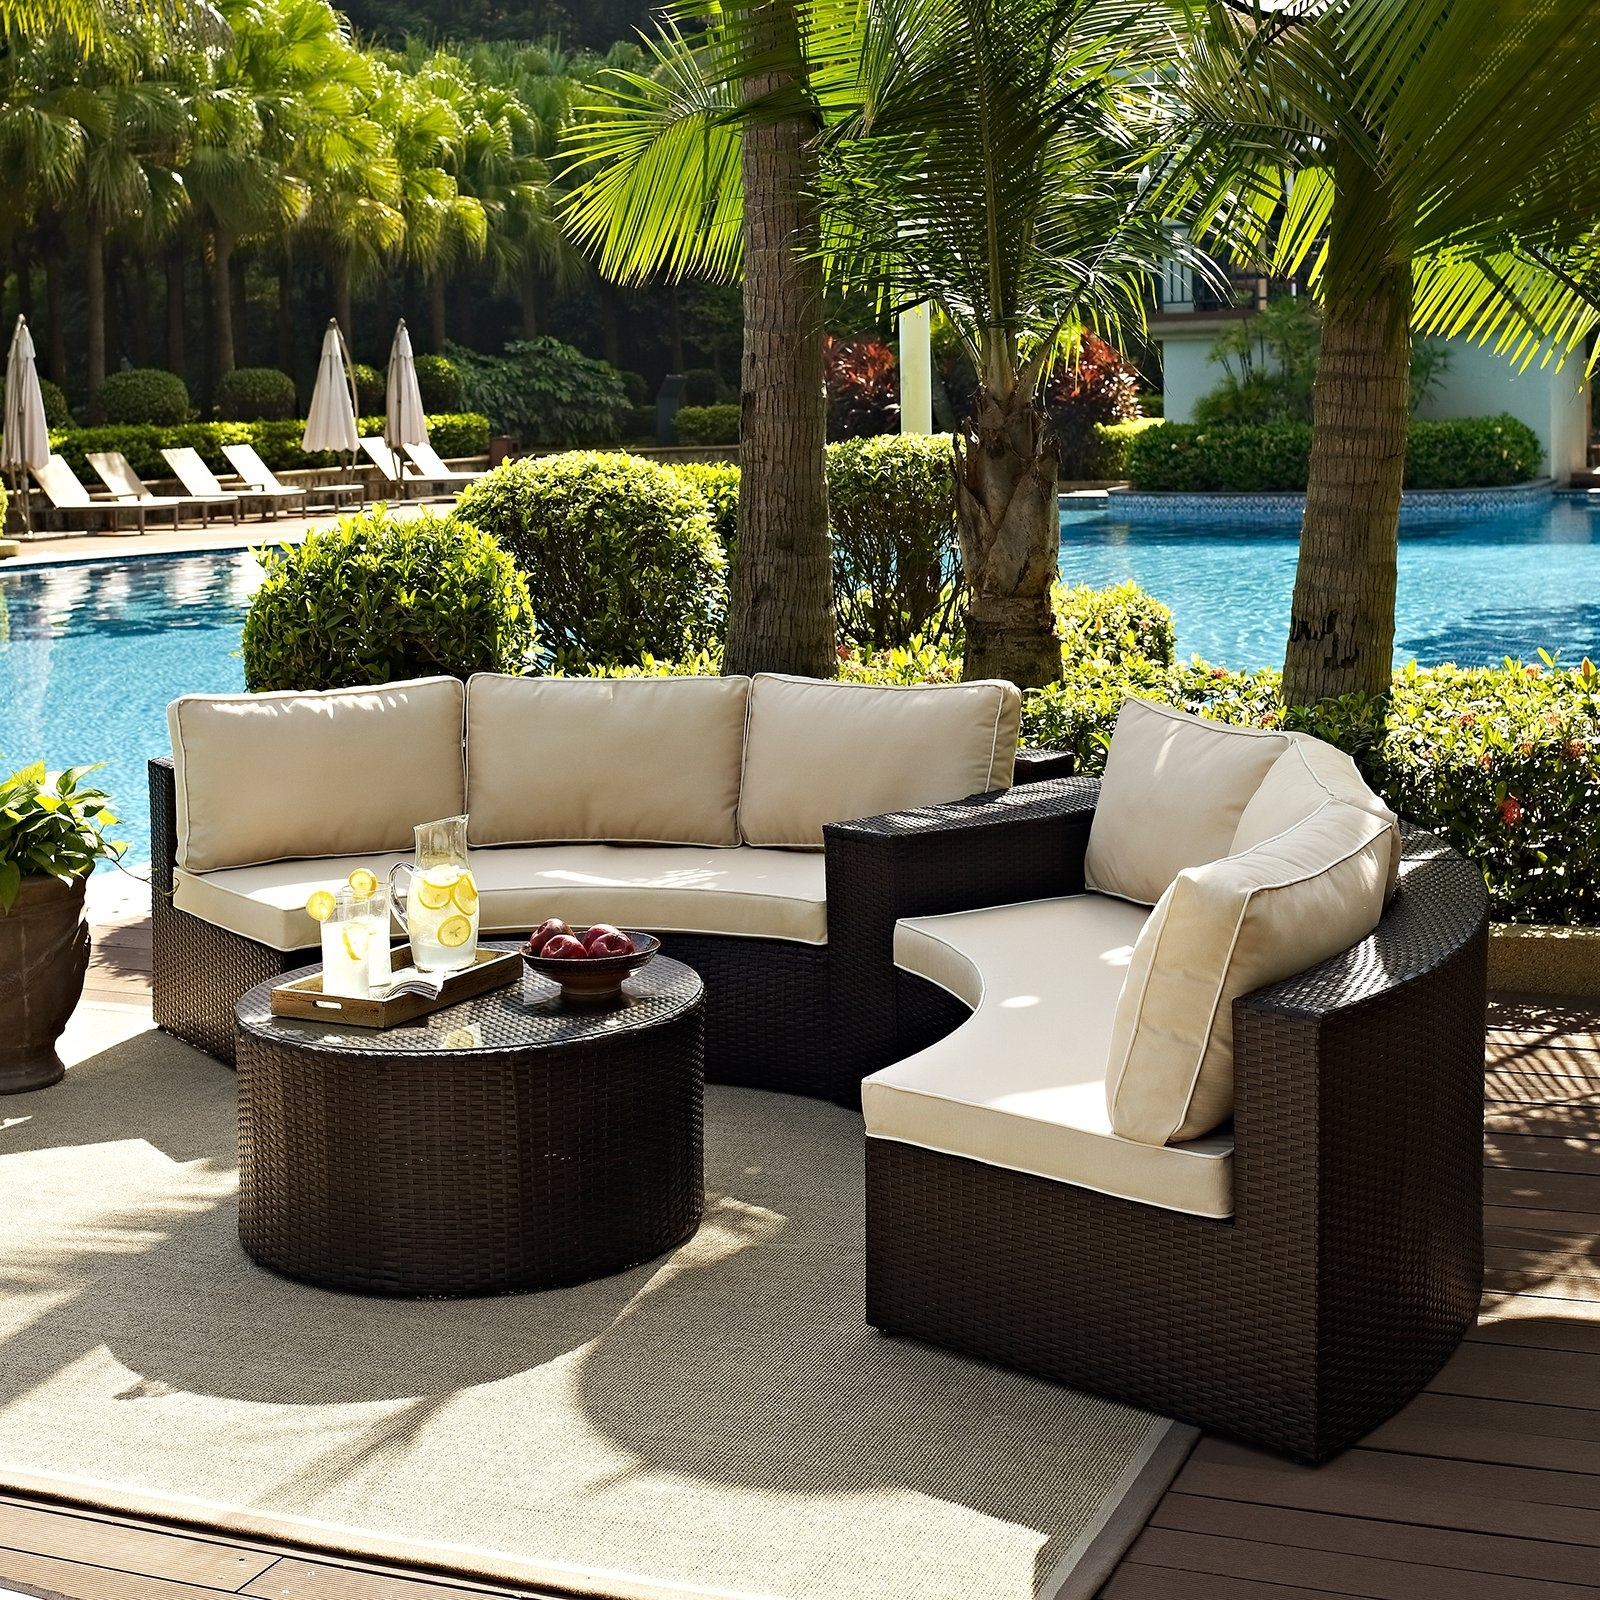 Outdoor Wicker Furniture Conversation Sets – Outdoor Designs For Recent Wicker 4pc Patio Conversation Sets With Navy Cushions (View 20 of 20)